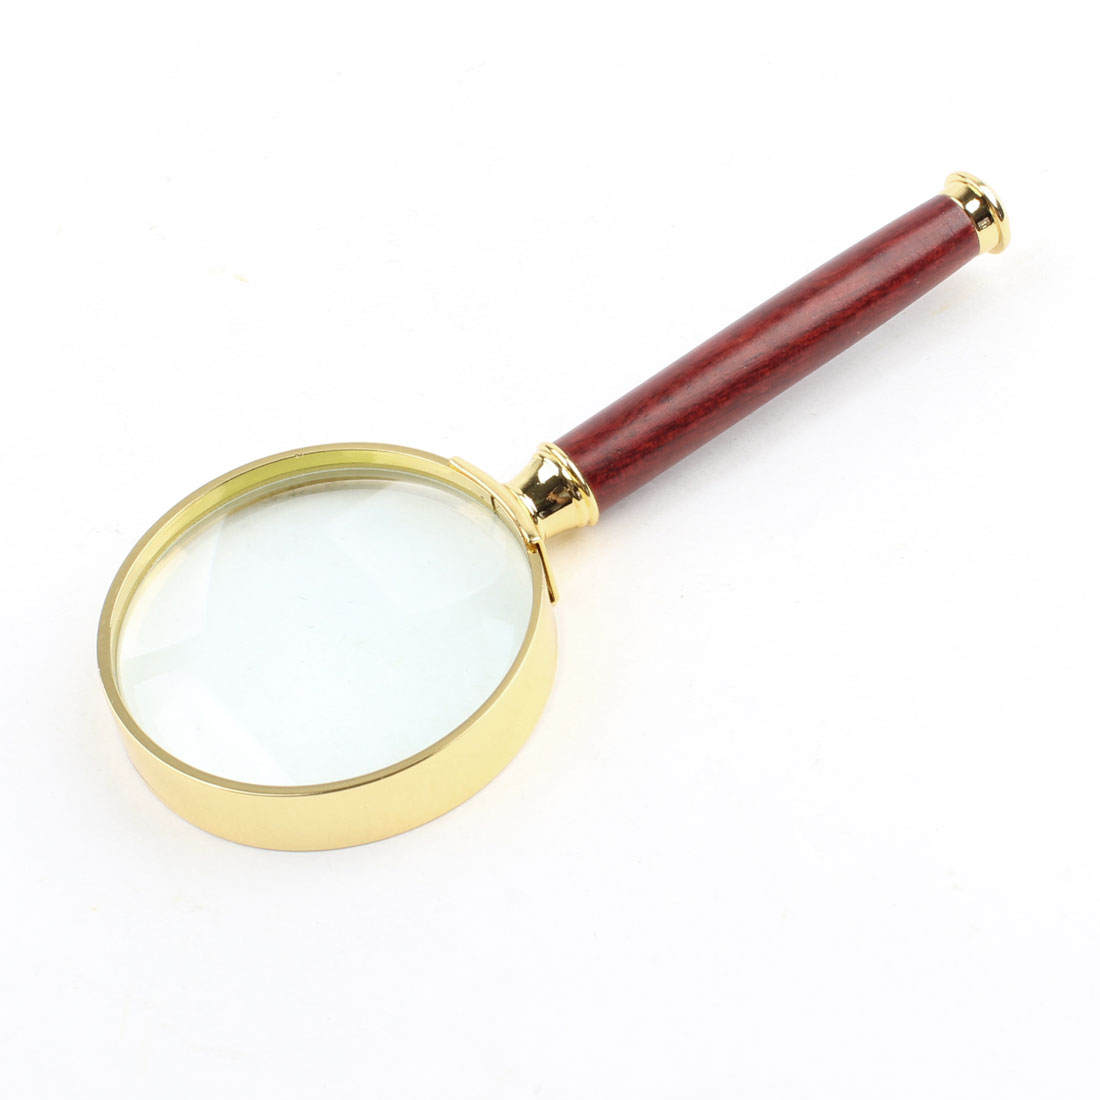 50mm Diameter 5X Optical Lens Rosewood Handle Gold Tone Frame Magnifying Glass